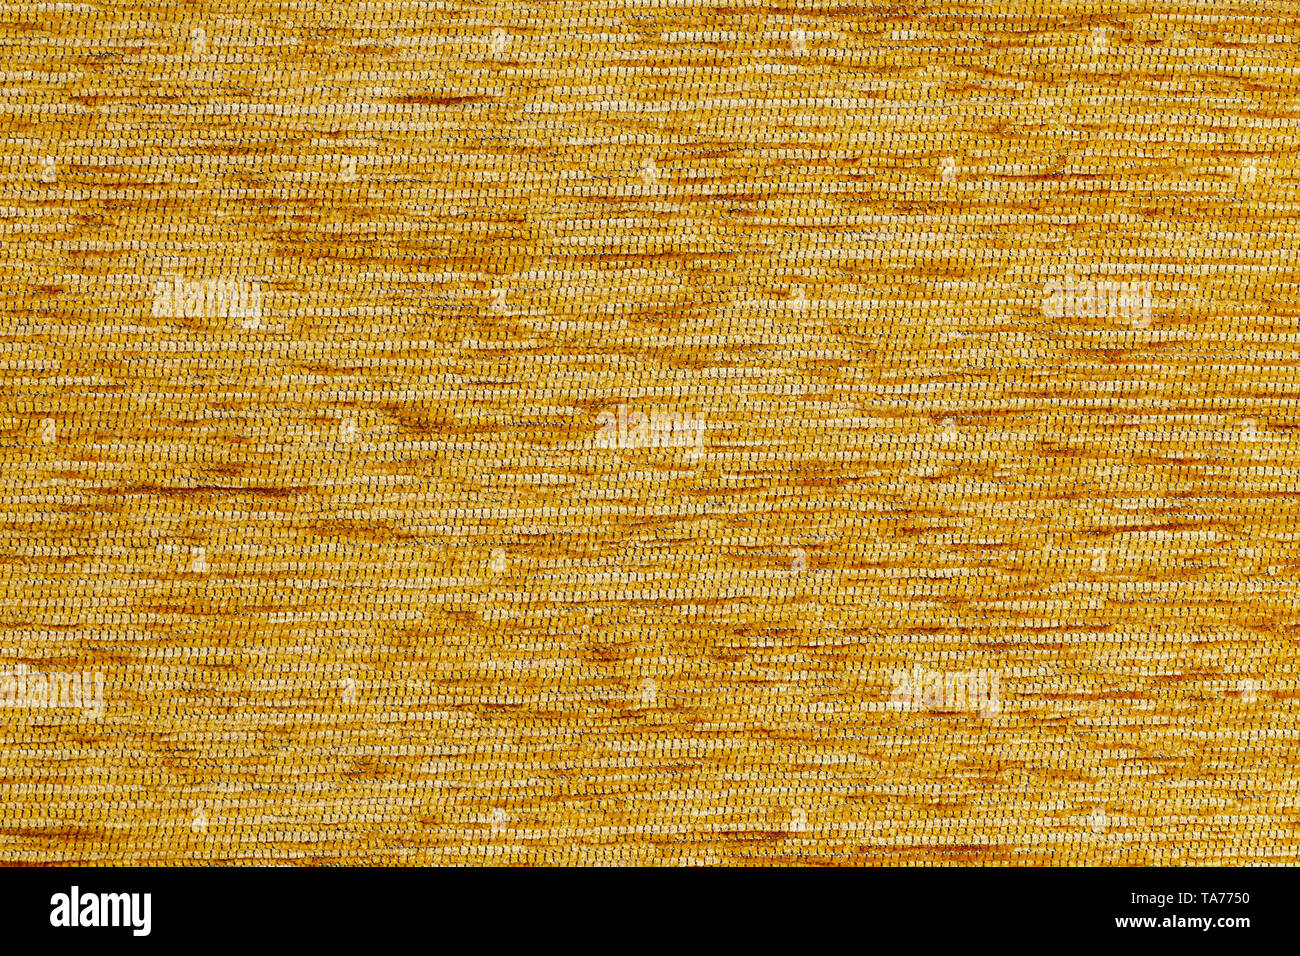 Orange flat short hard fluff dense fabric background, close up without any blurring - Stock Image